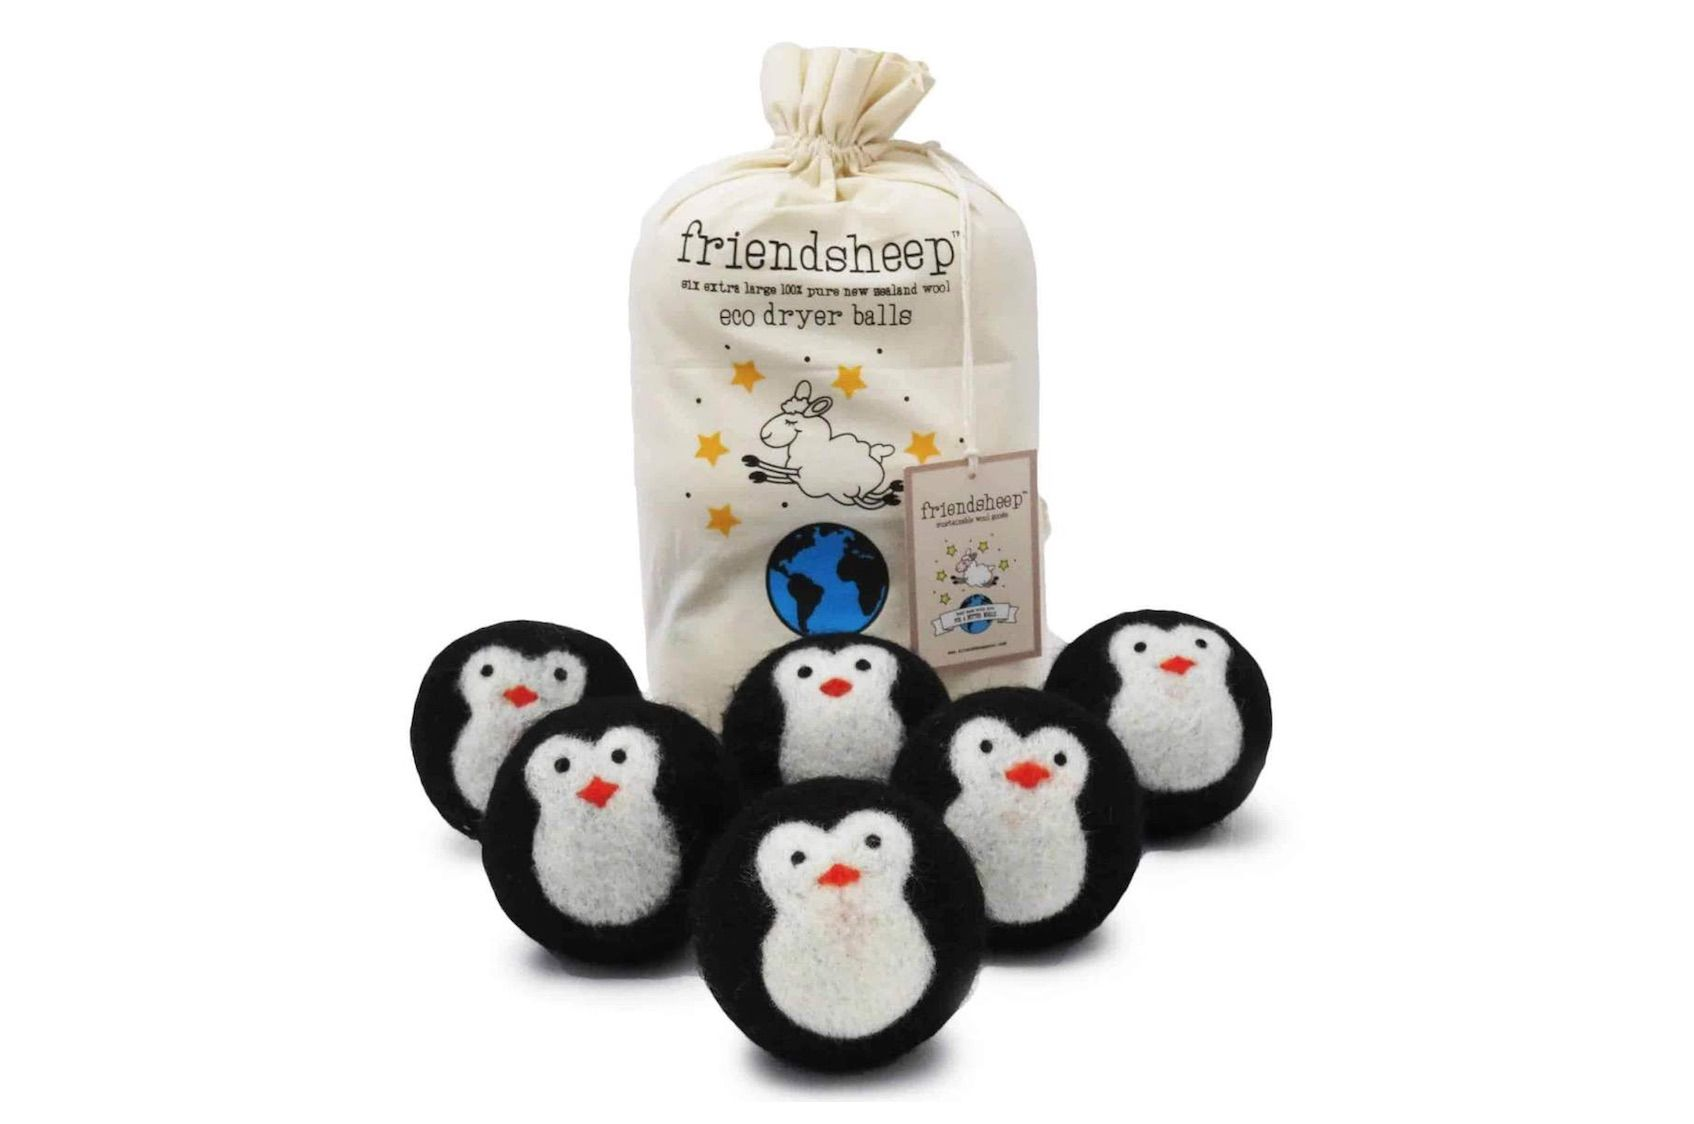 Cute wool dryer balls with penguin faces